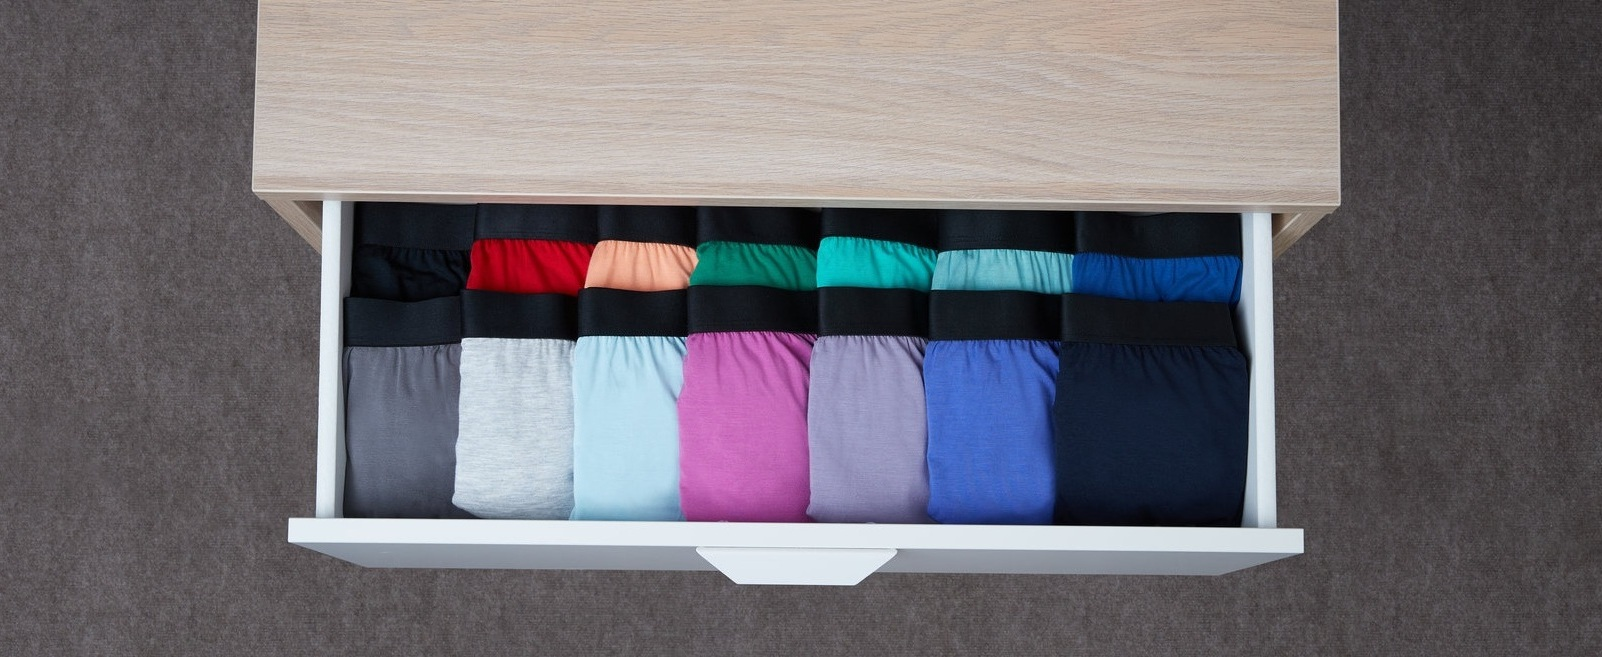 181130_MSanchez_MeUndies_Packs_Spring19_MeUndies_Drawer_ElevatedProduct_011.jpg